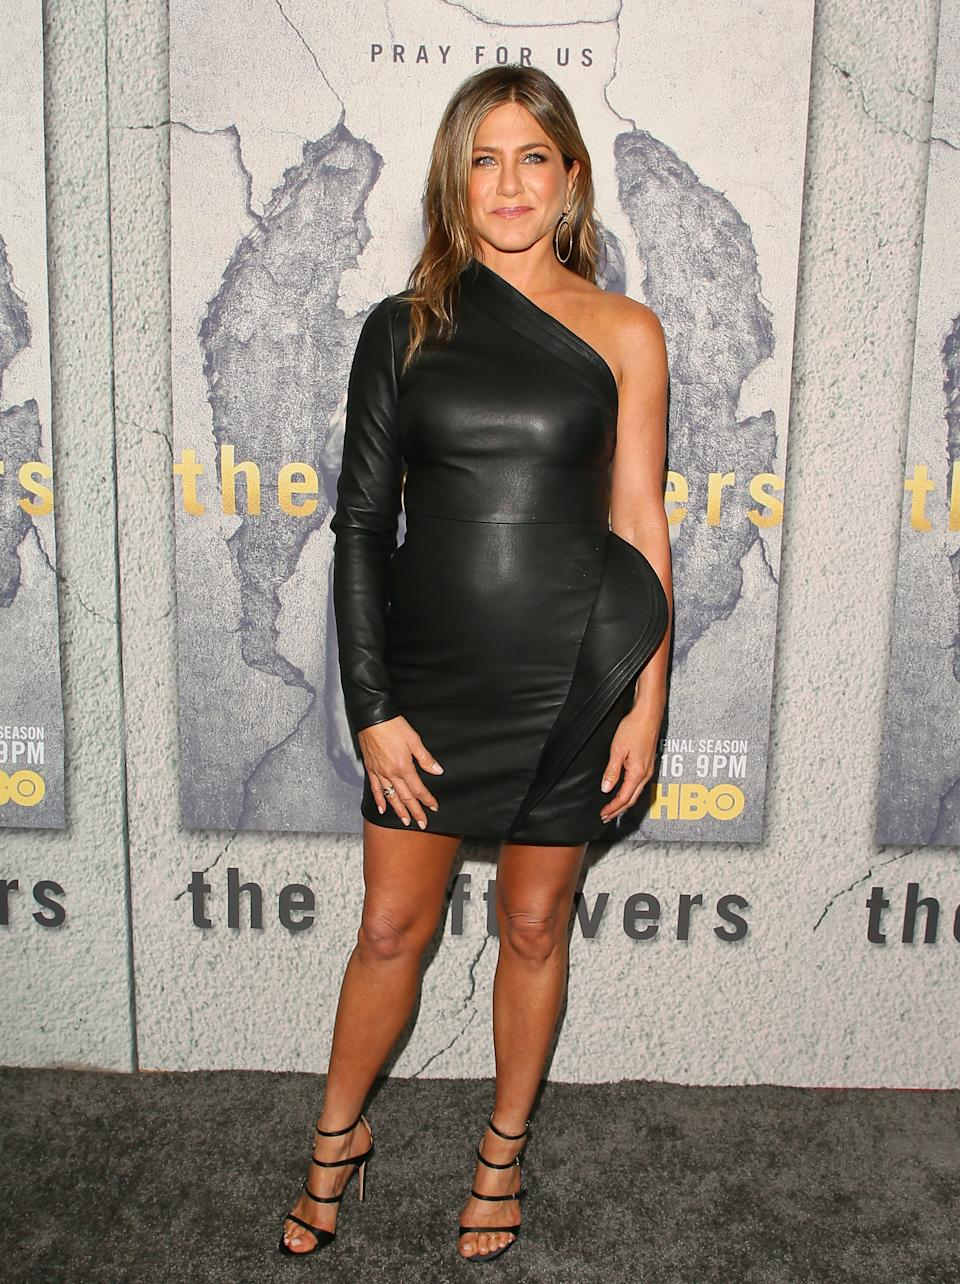 """Aniston's asymmetrical leather dress by Brandon Maxwell was an out-of-the-box fashion moment at """"The Leftovers"""" premiere in 2017. (Photo by JB Lacroix/WireImage)"""